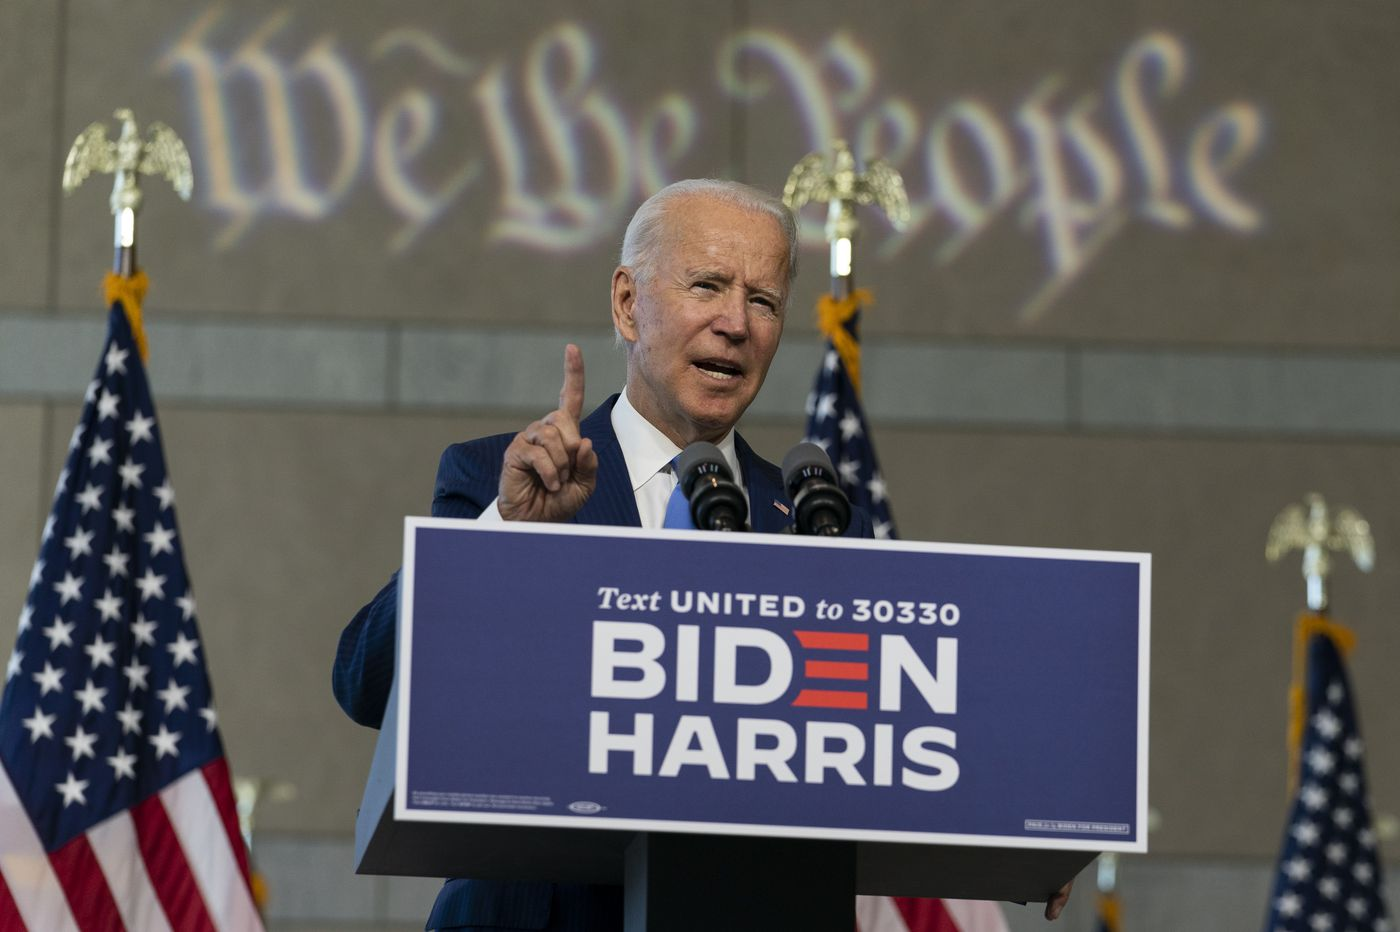 Biden has a clear lead over Trump in all-important Pennsylvania as the 2020 election enters the homestretch